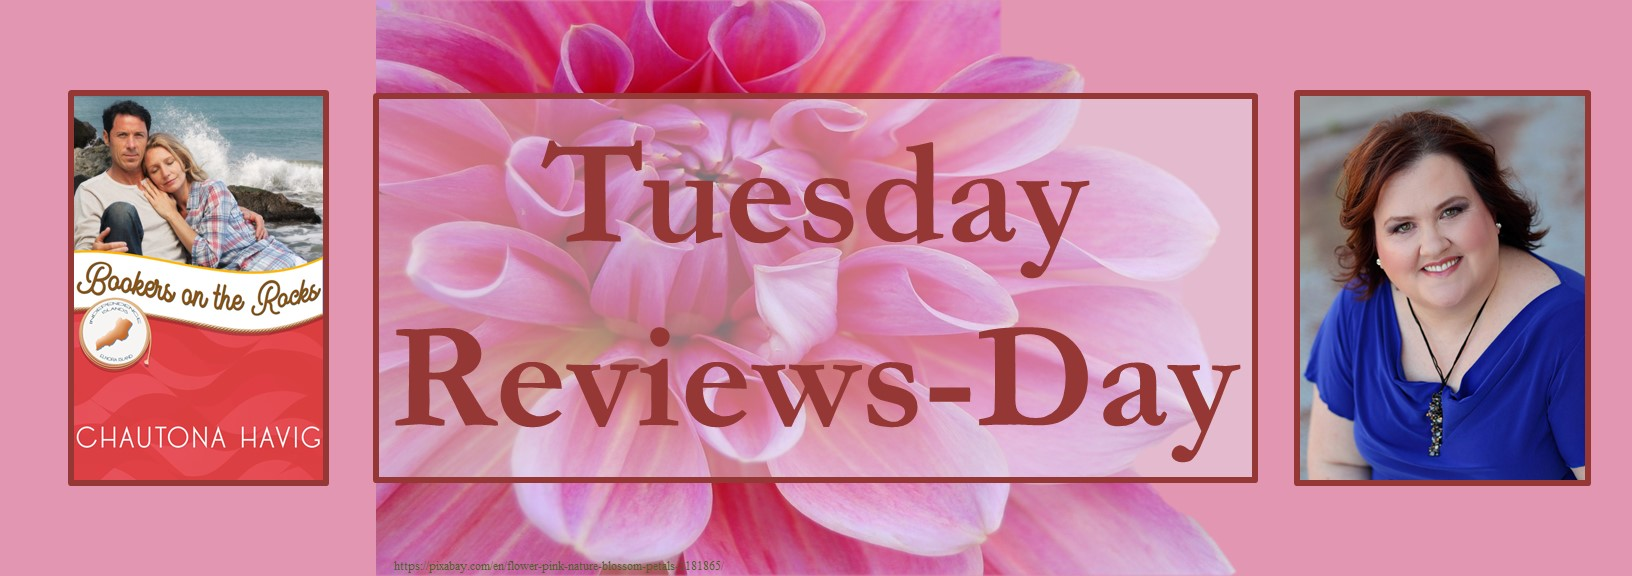 021621 - bookers on the rocks - tuesday reviews day banner